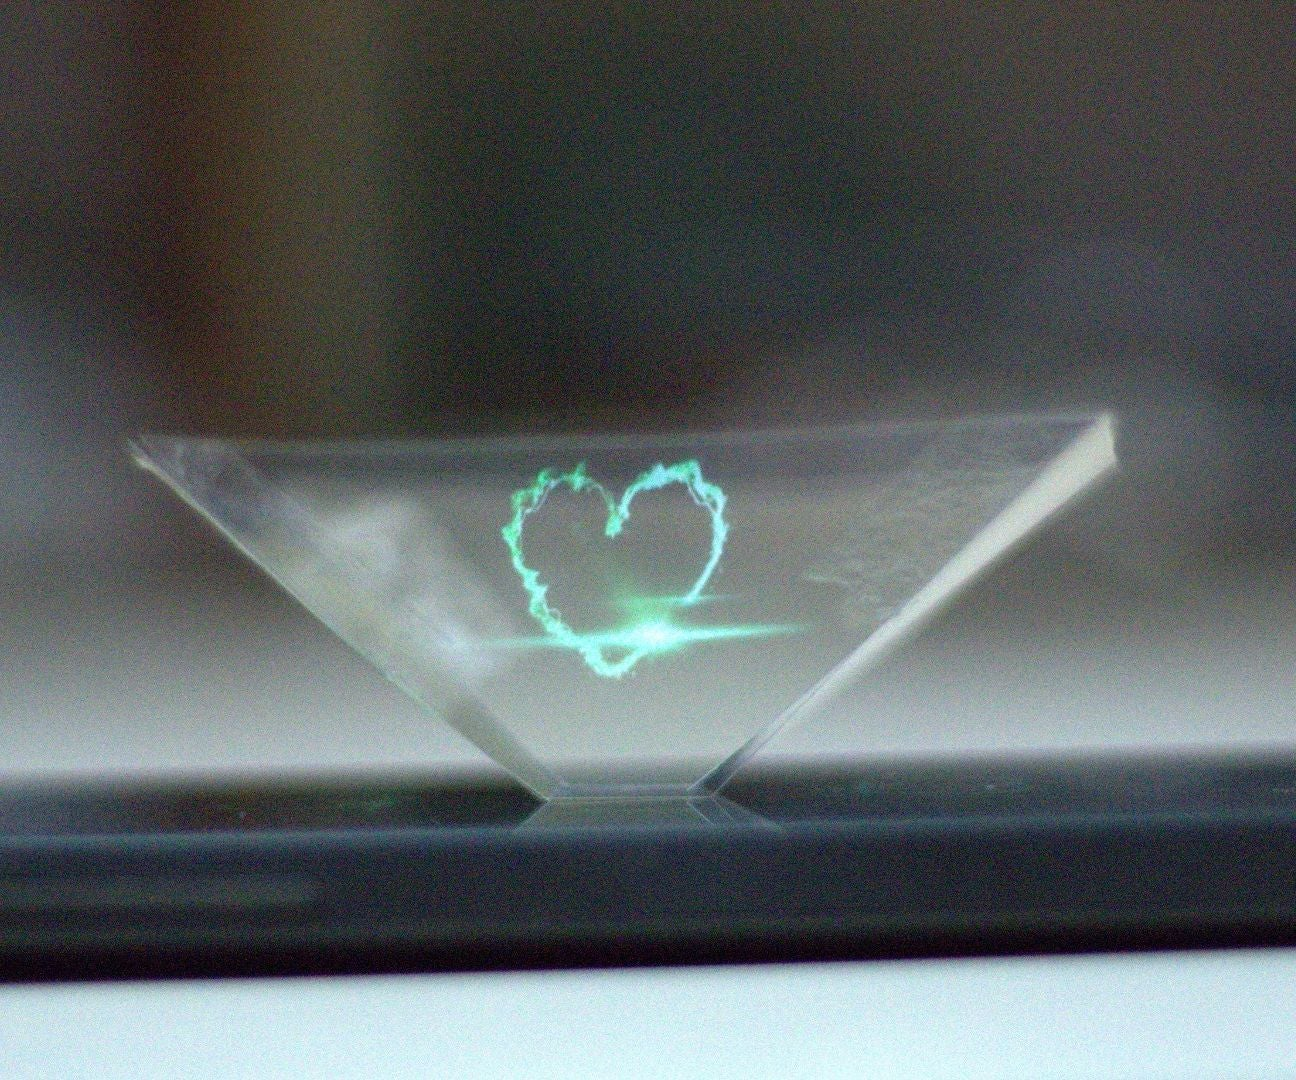 DIY 3D Hologram Pyramid: 6 Steps